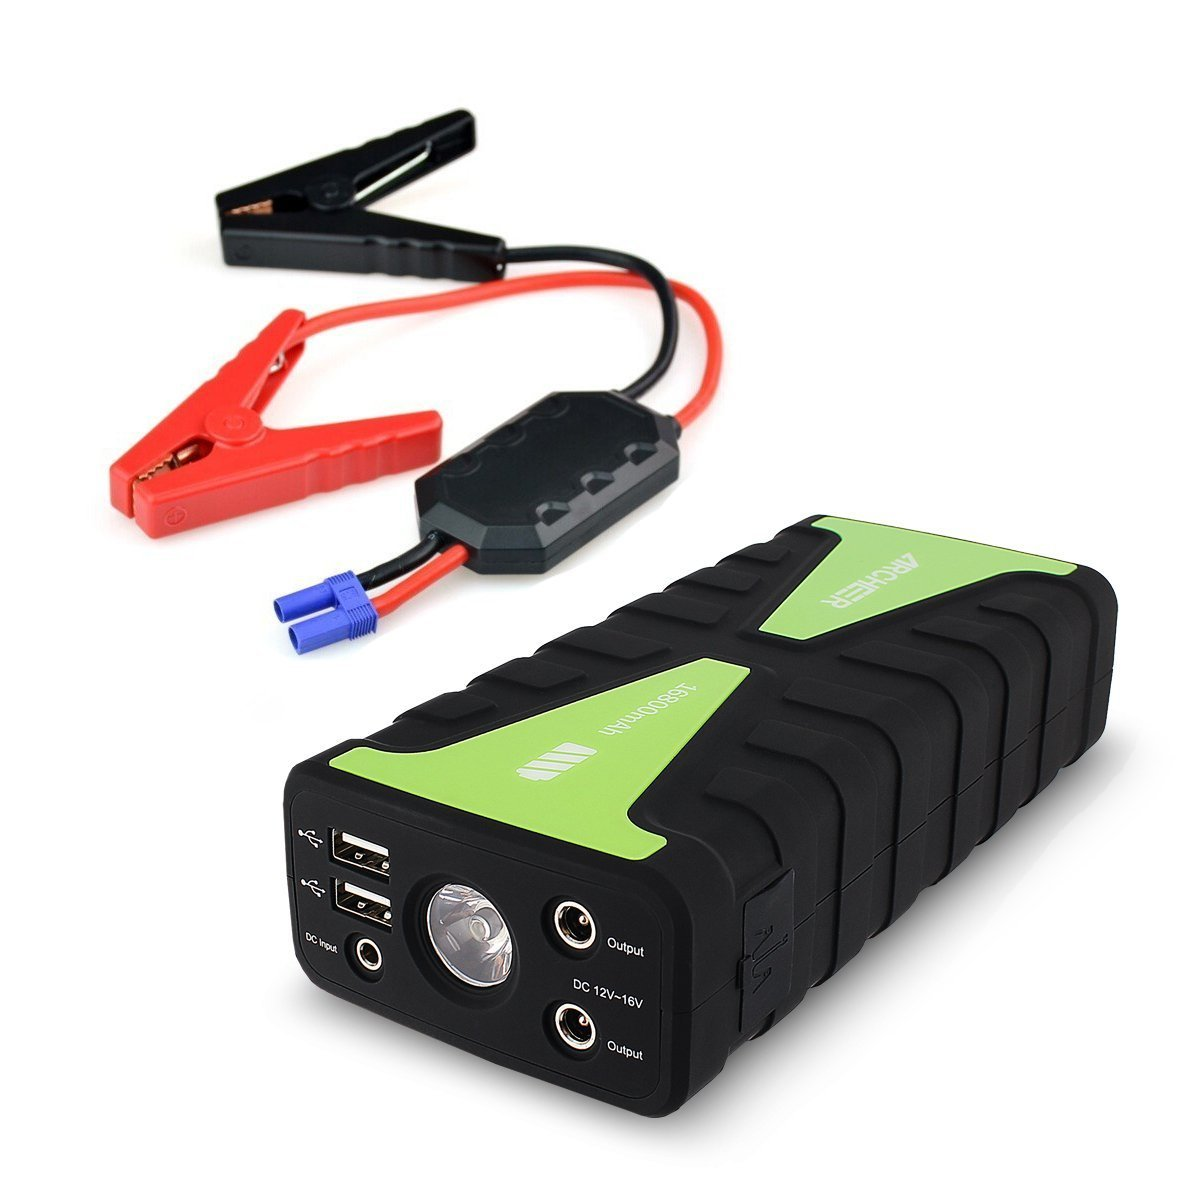 VETOMILE Portable Car Jump Starter 800A 21000mAh Emergency Battery Booster Pack Power Bank with Dual USB Charging Outputs and LED Flashlight for Gasoline//Diesel Engines Car or Pickup Truck